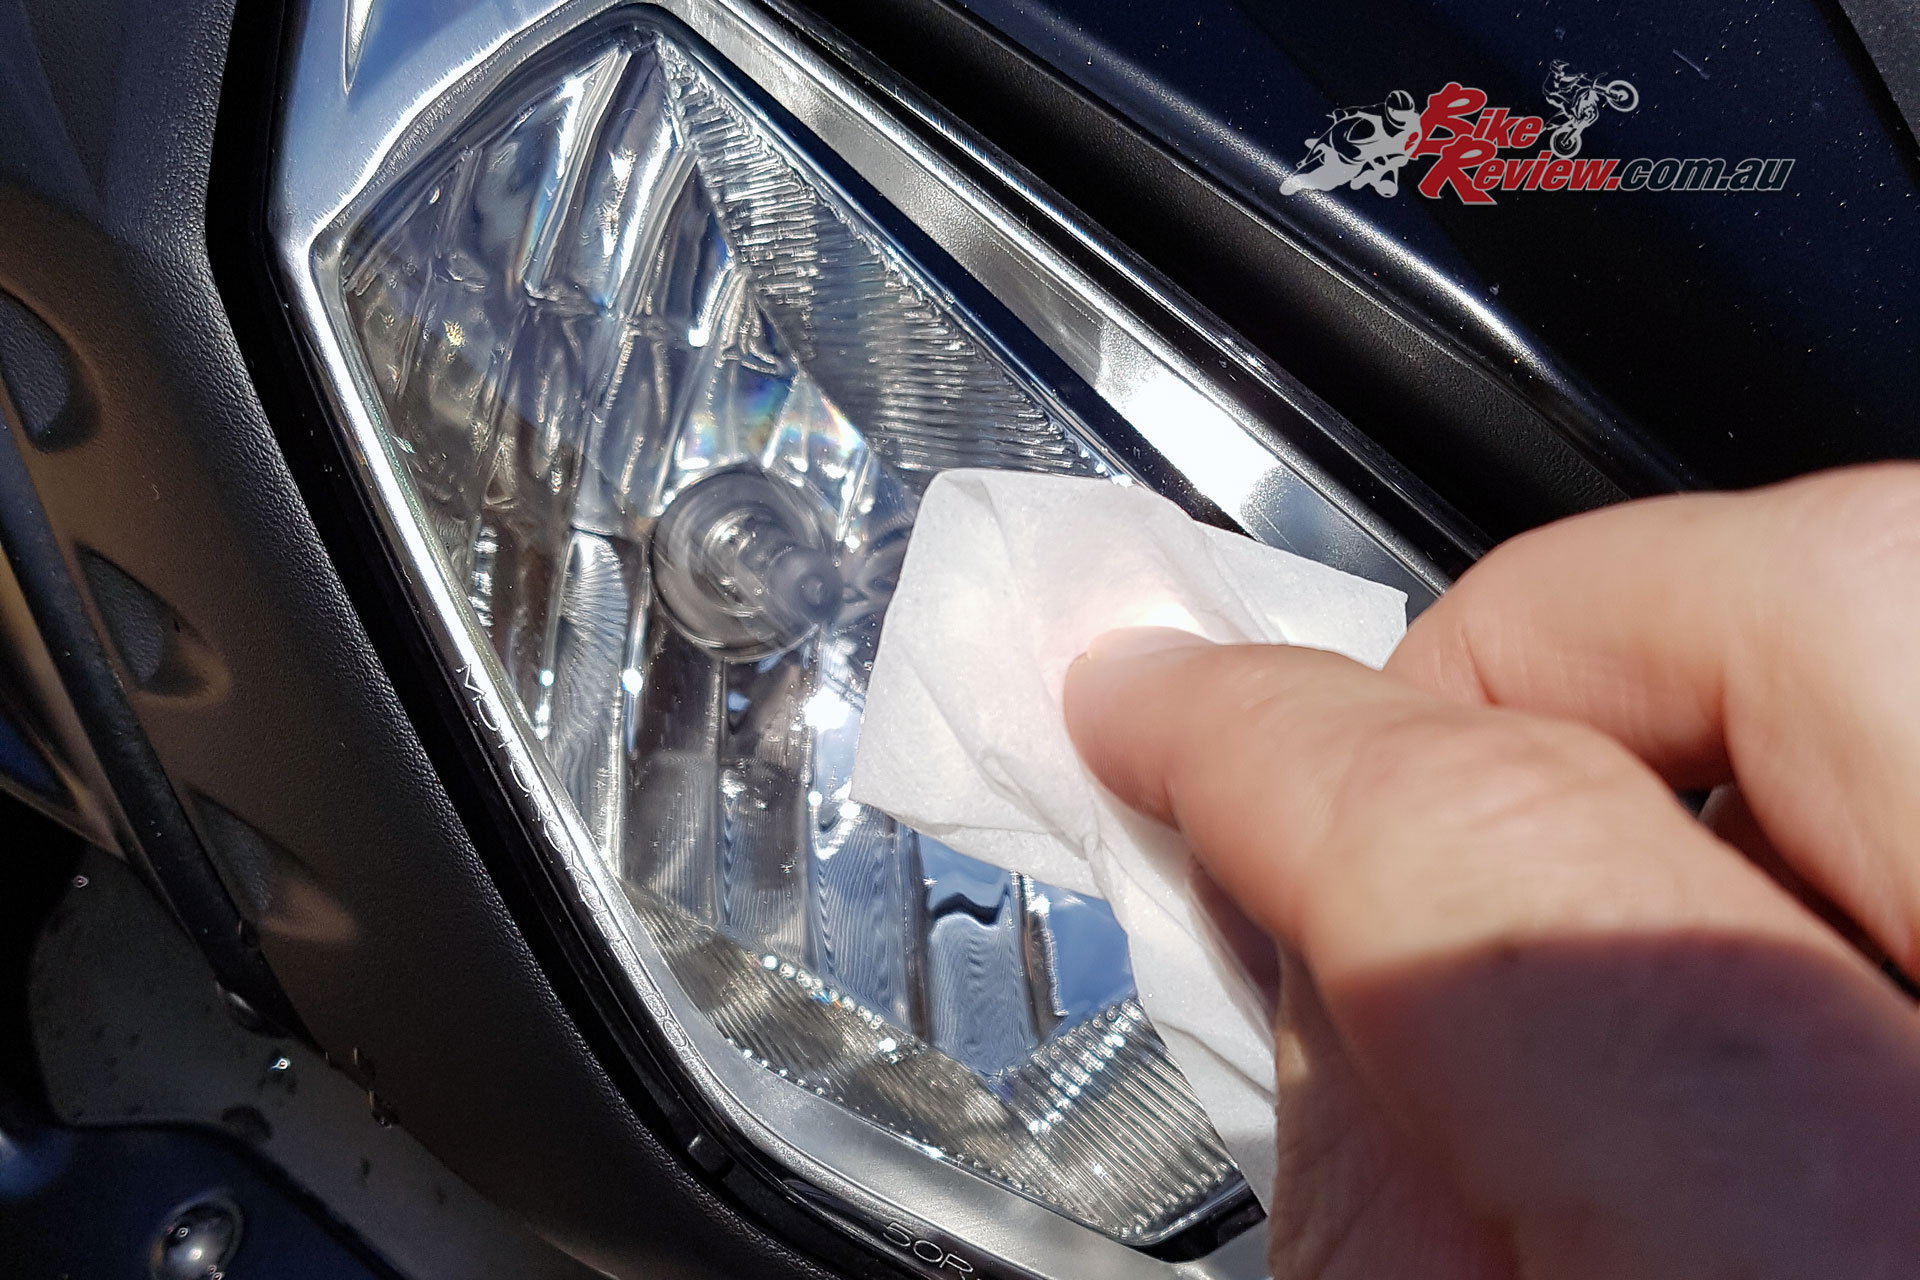 Wiping down the headlight with the 3M VHB Surface Wipe